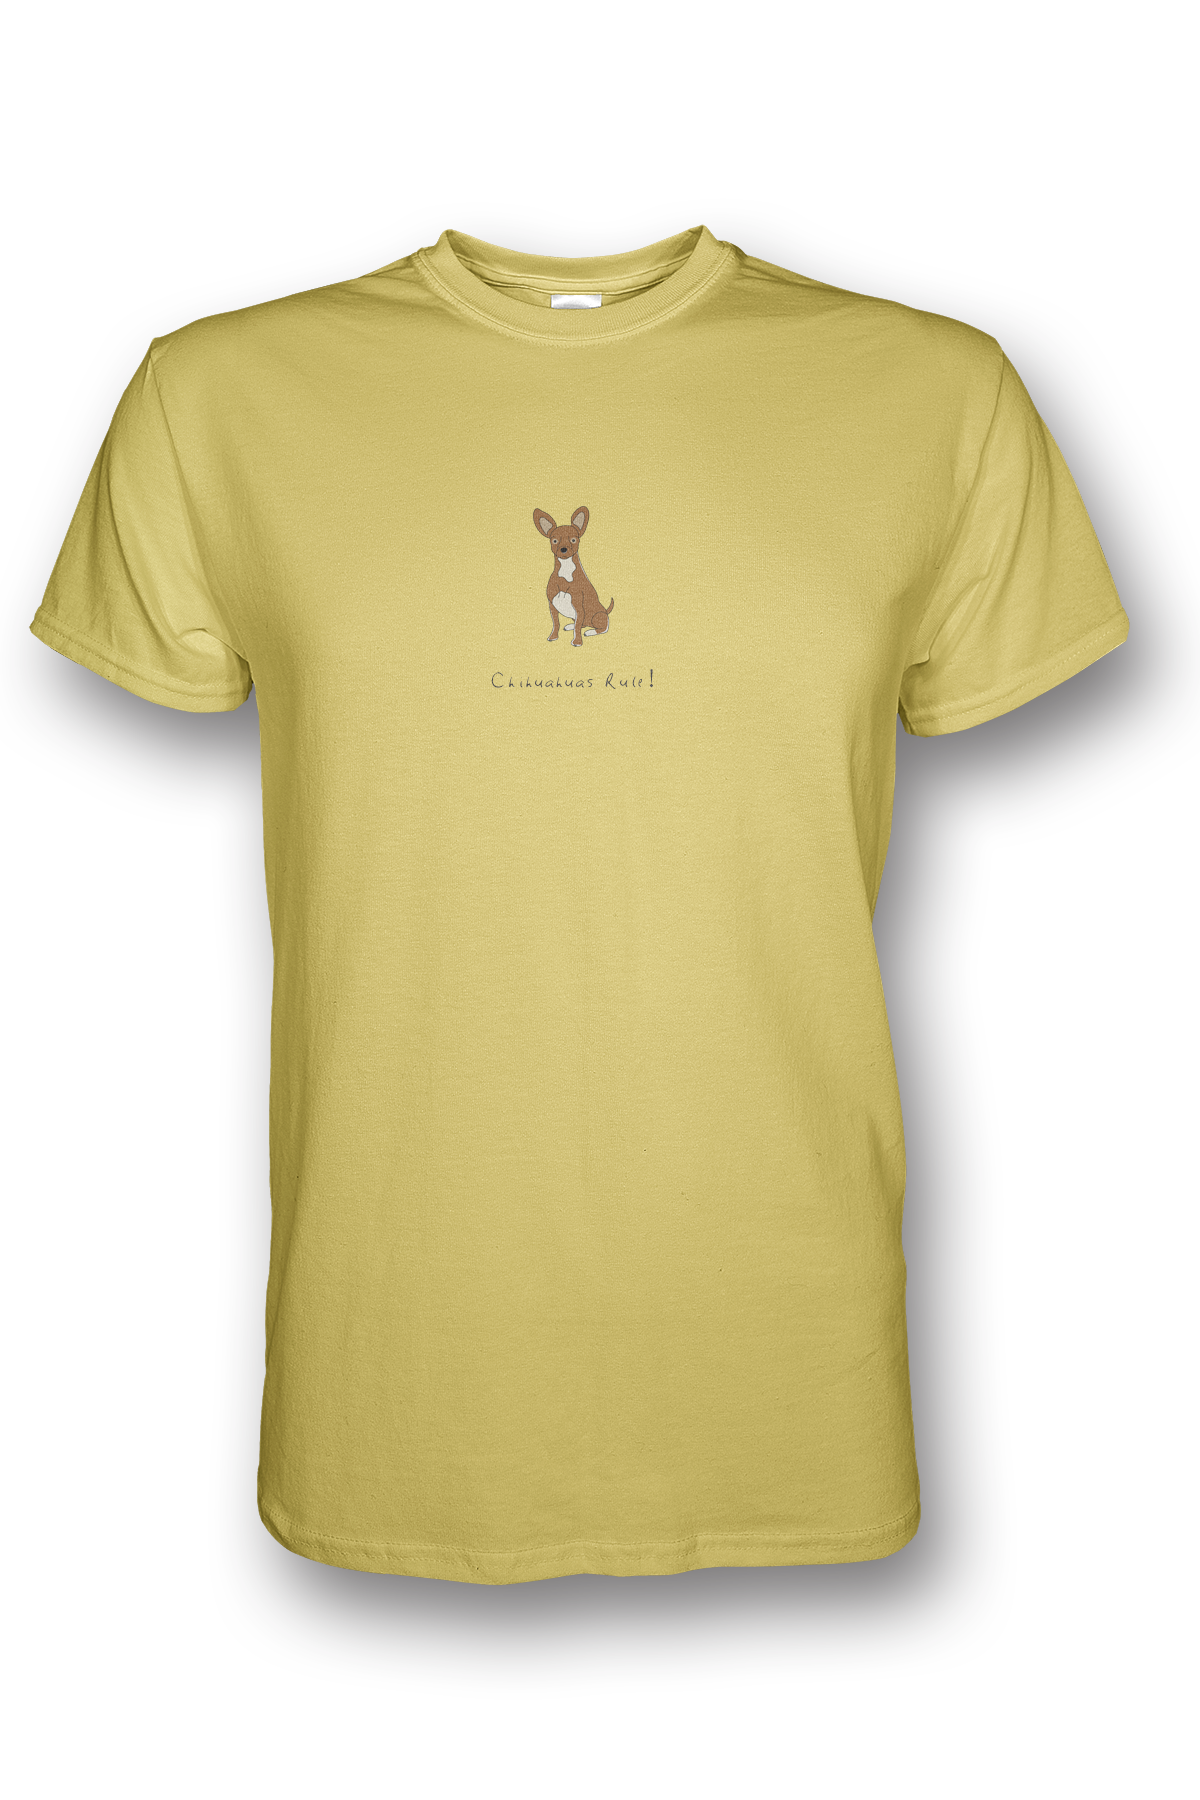 Mens Crew Neck T-Shirt - Chihuahuas Rule!